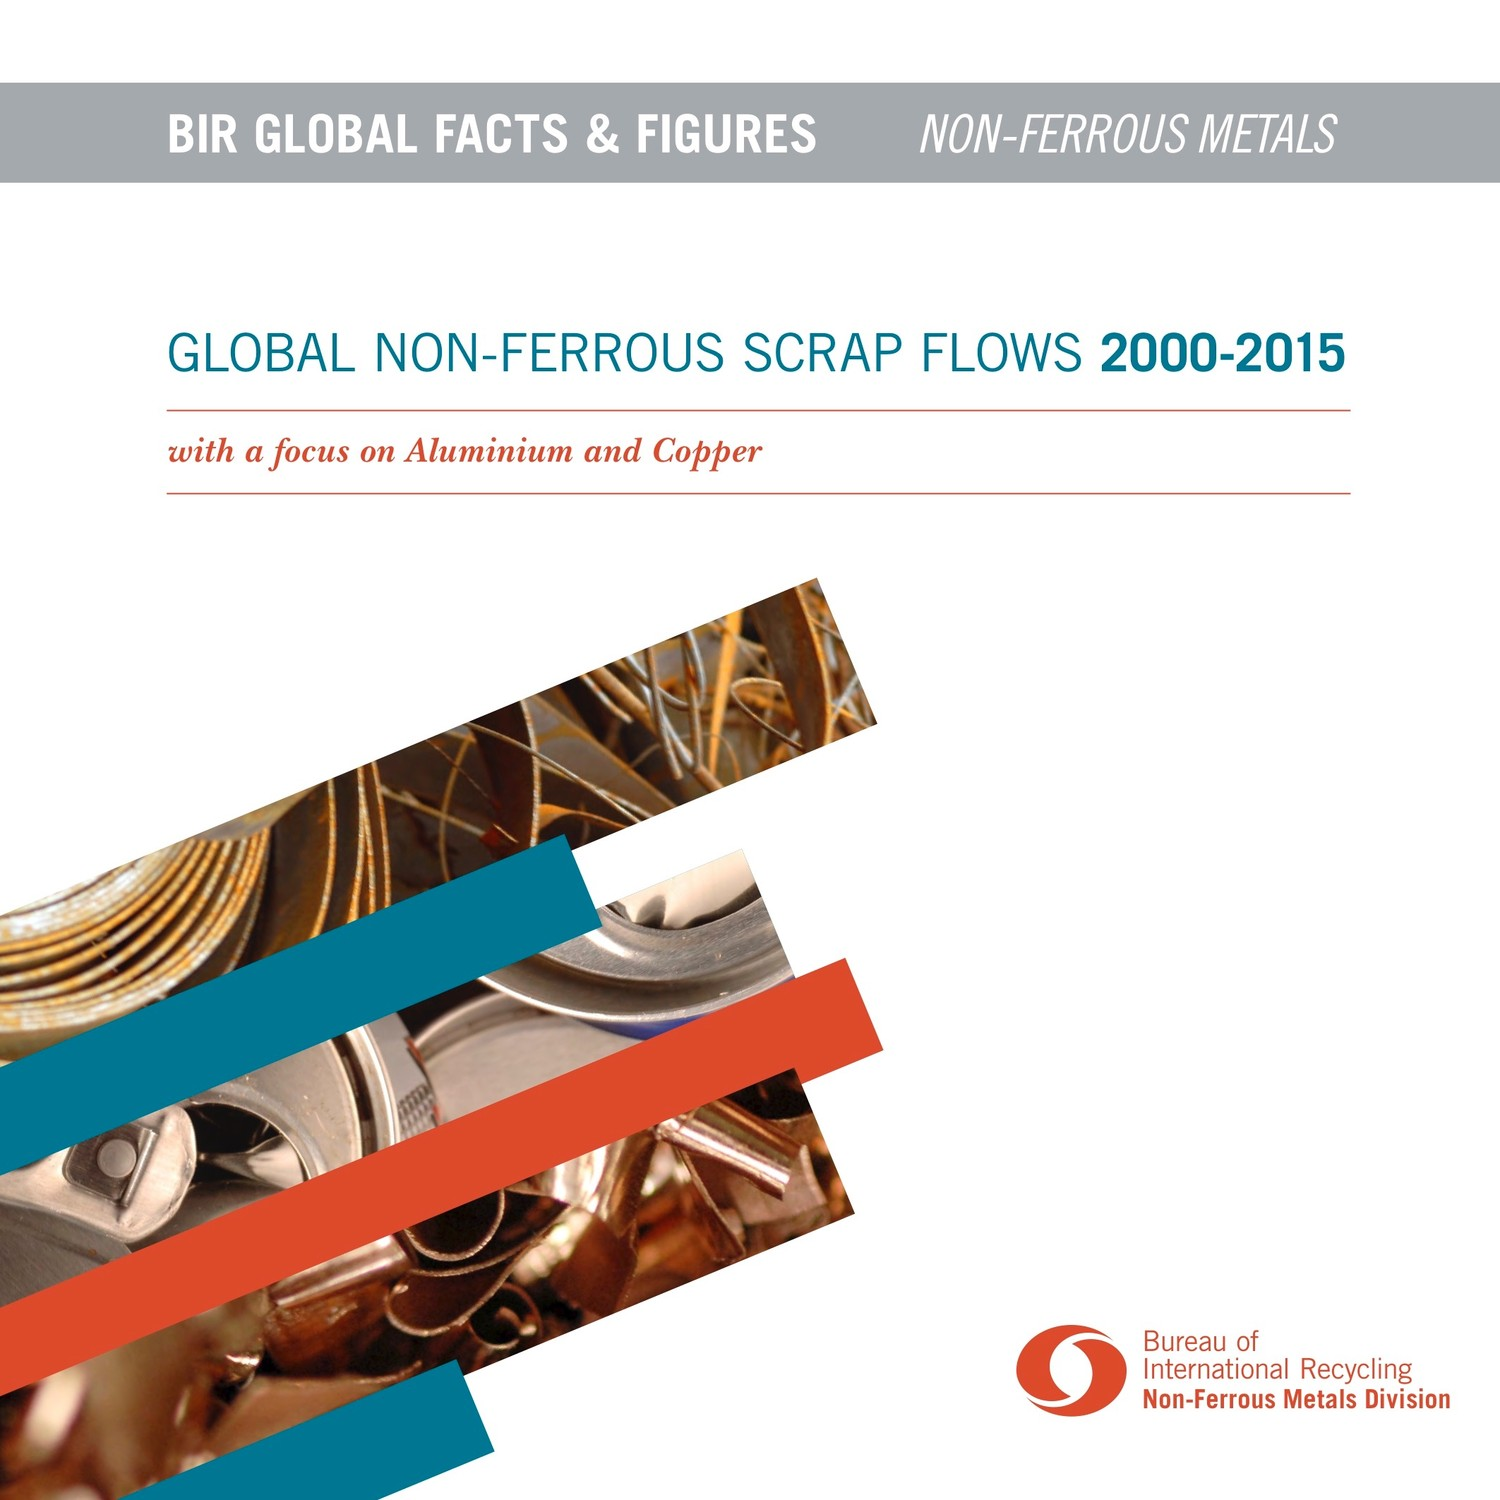 Global Non-Ferrous Scrap Flows 2000-2015 Image 1